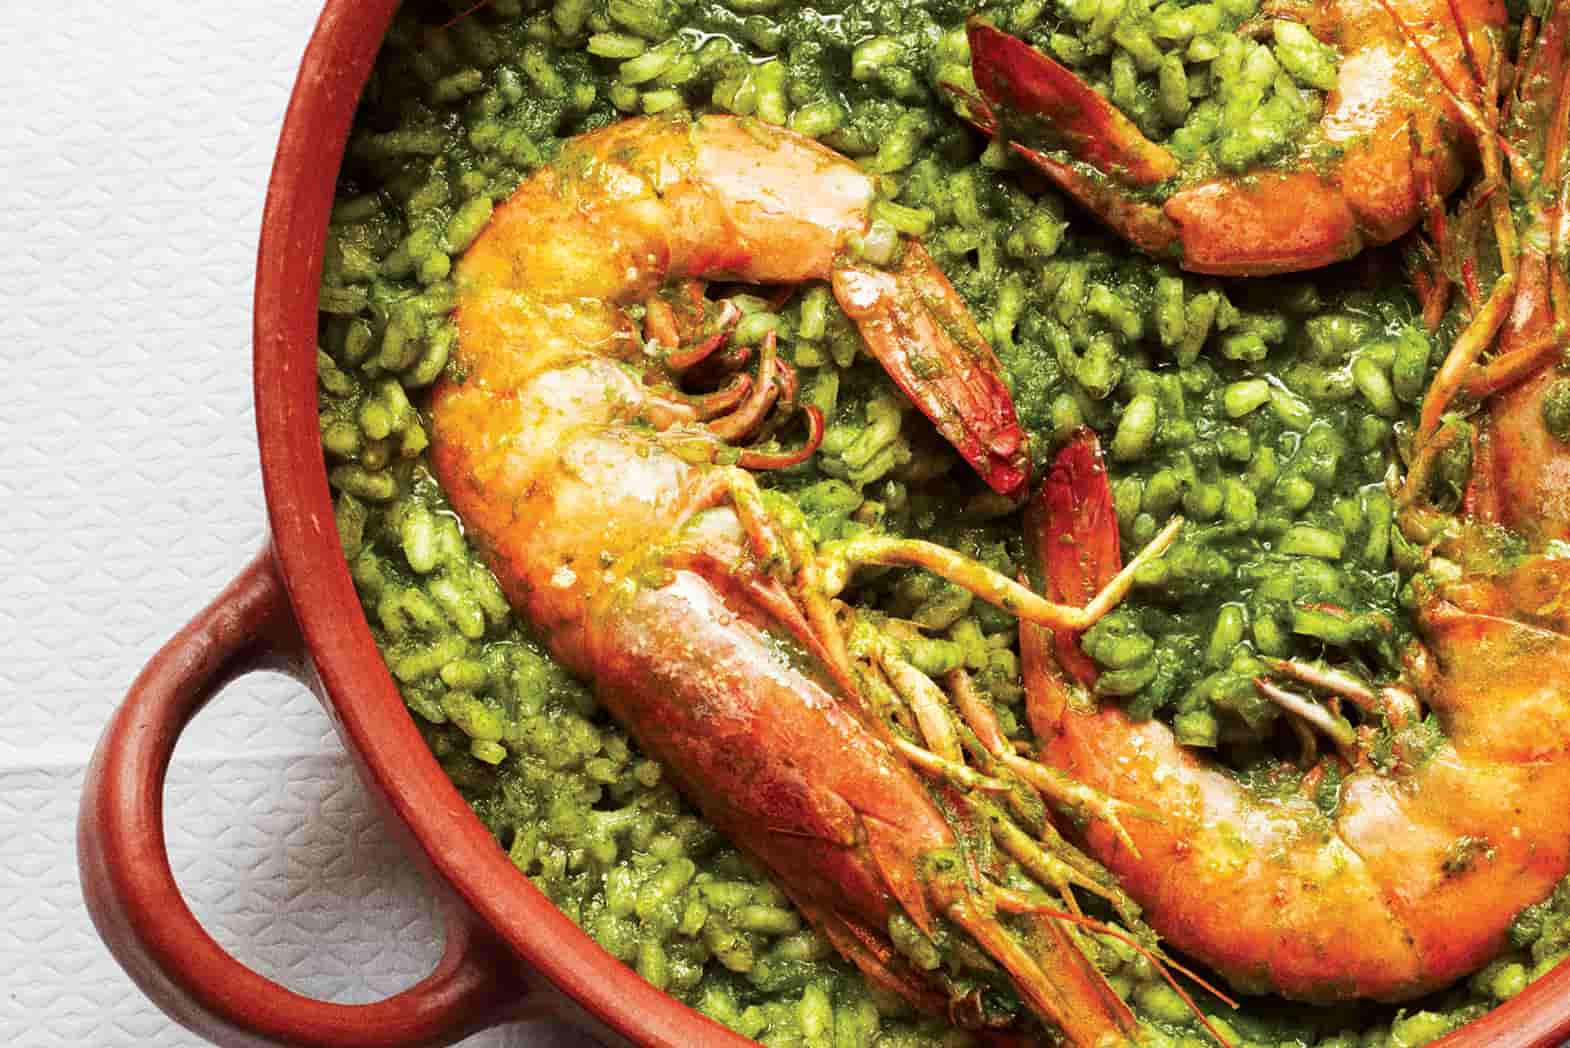 Gabriela Cámara's Arroz Verde Con Camarones (Prawns With Green Rice)